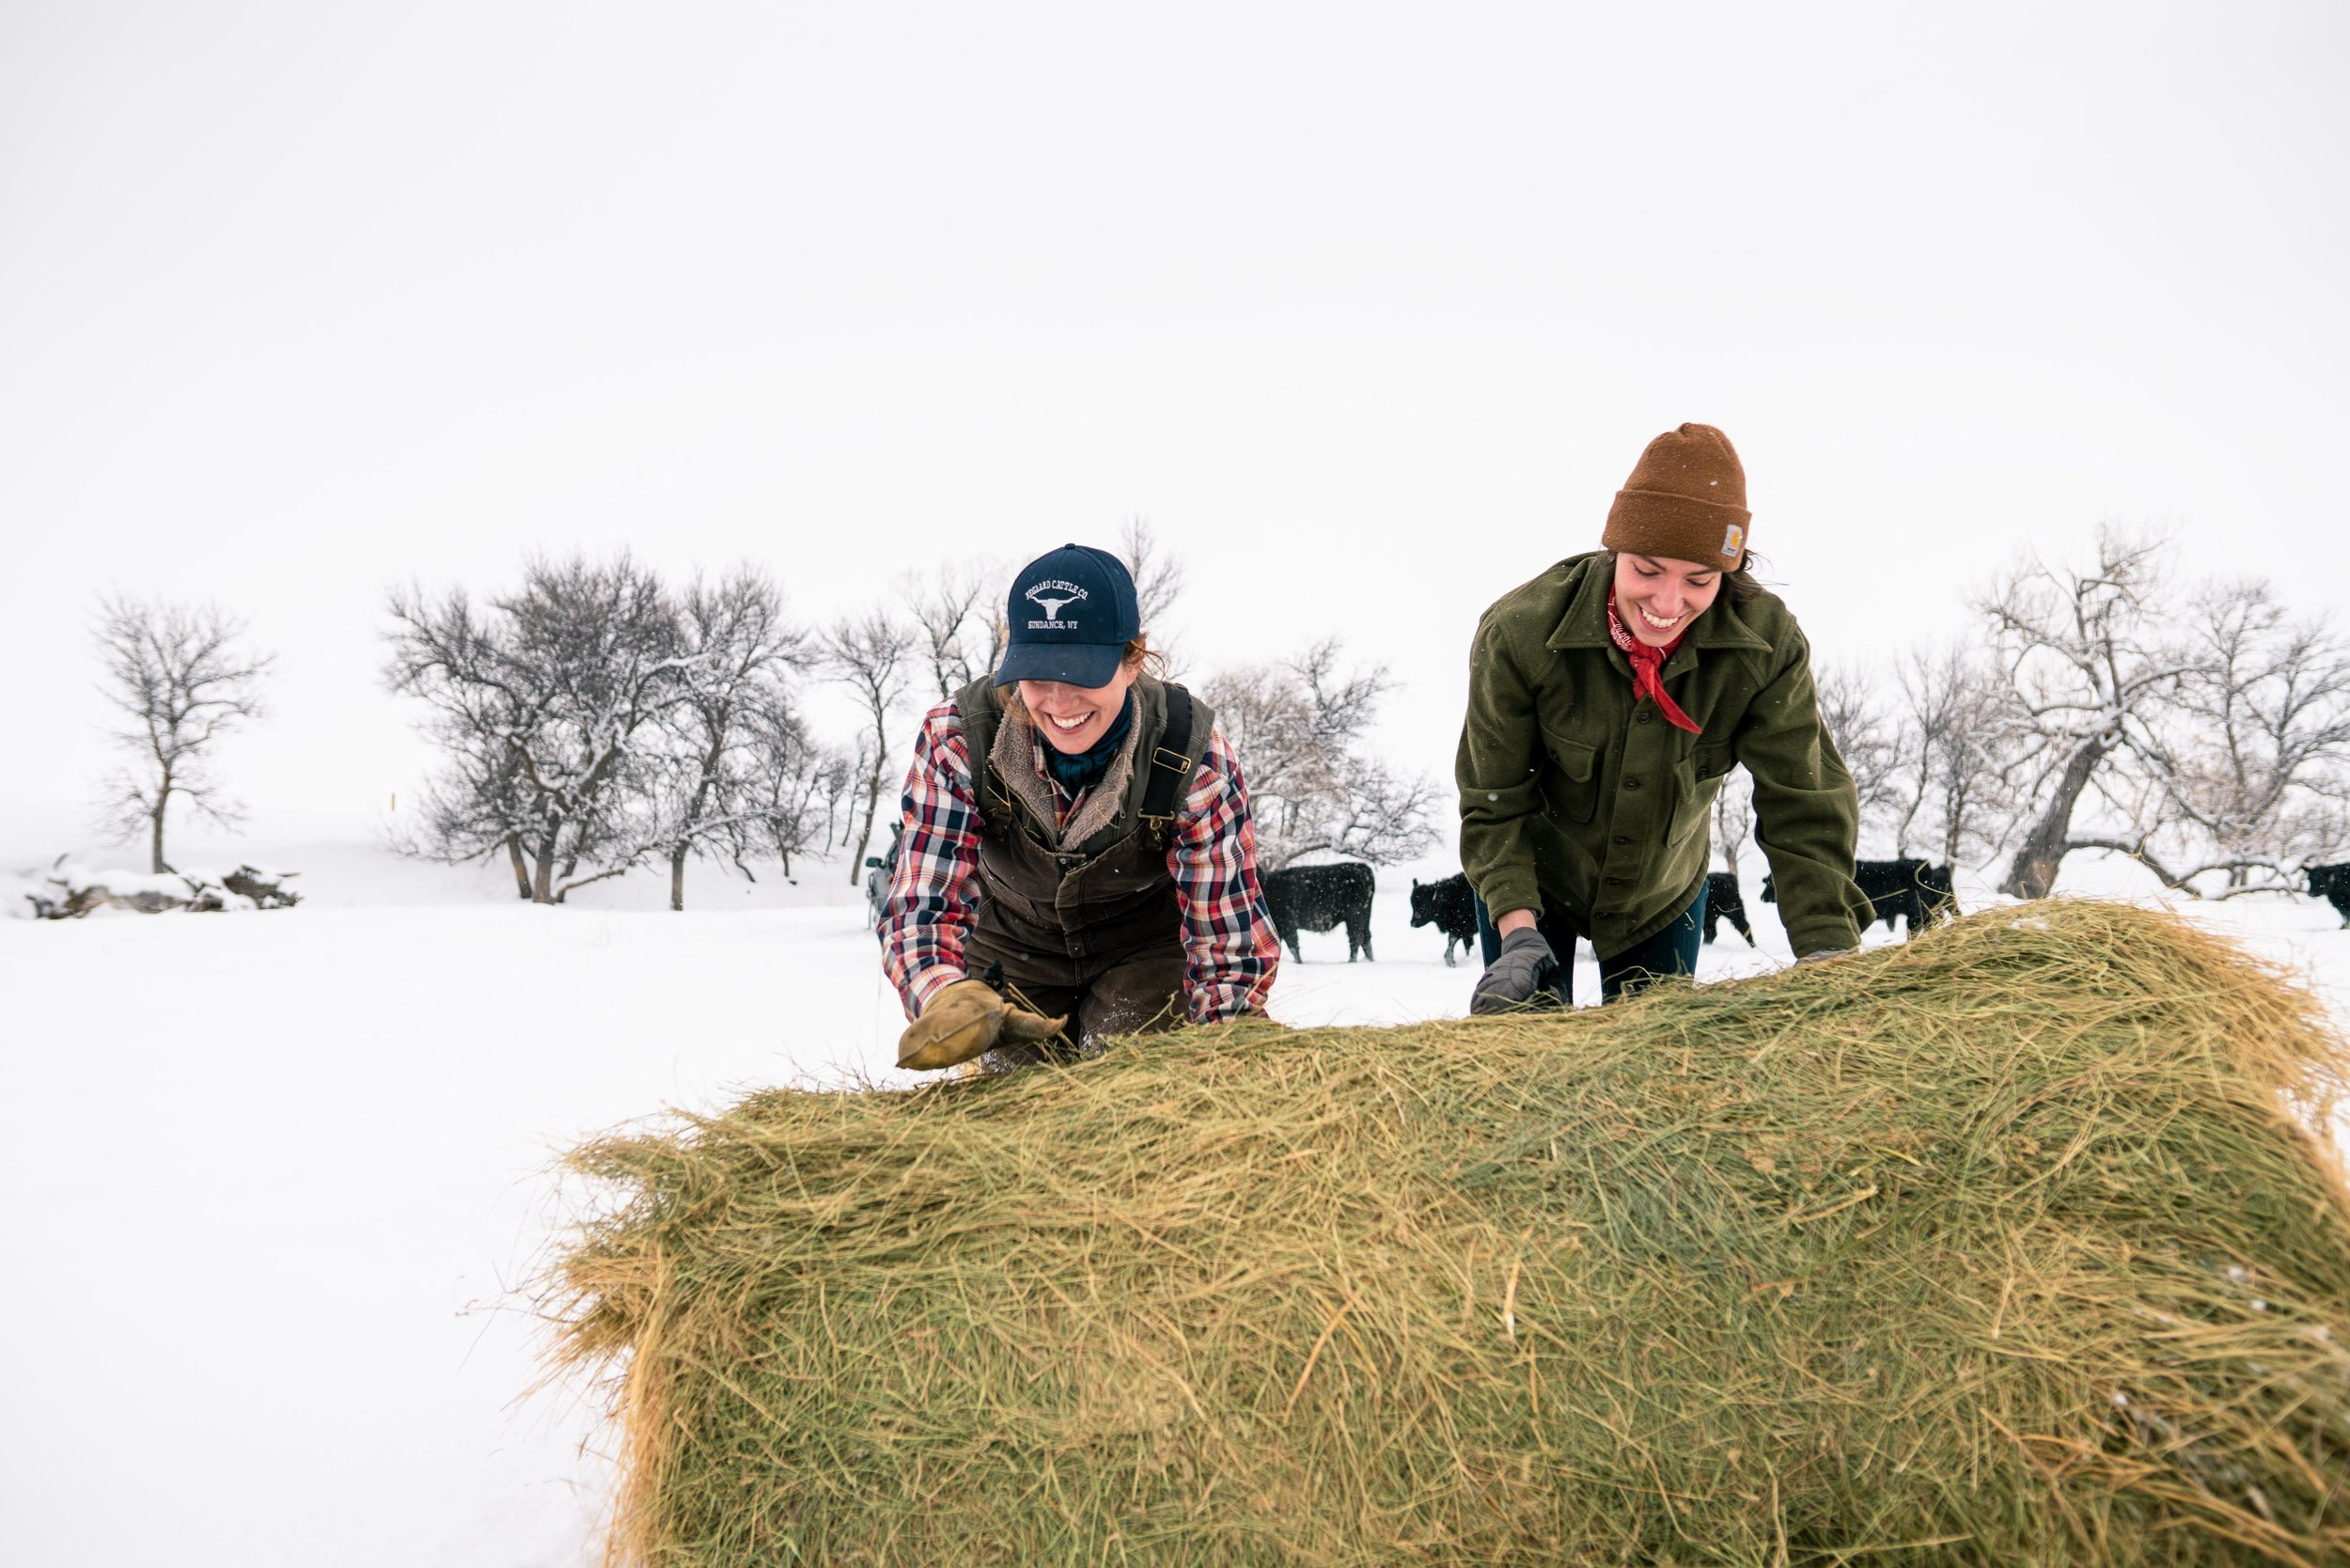 Jenna Flatgard and Melissa DiNino unrolling hay for feeding in eastern Montana.